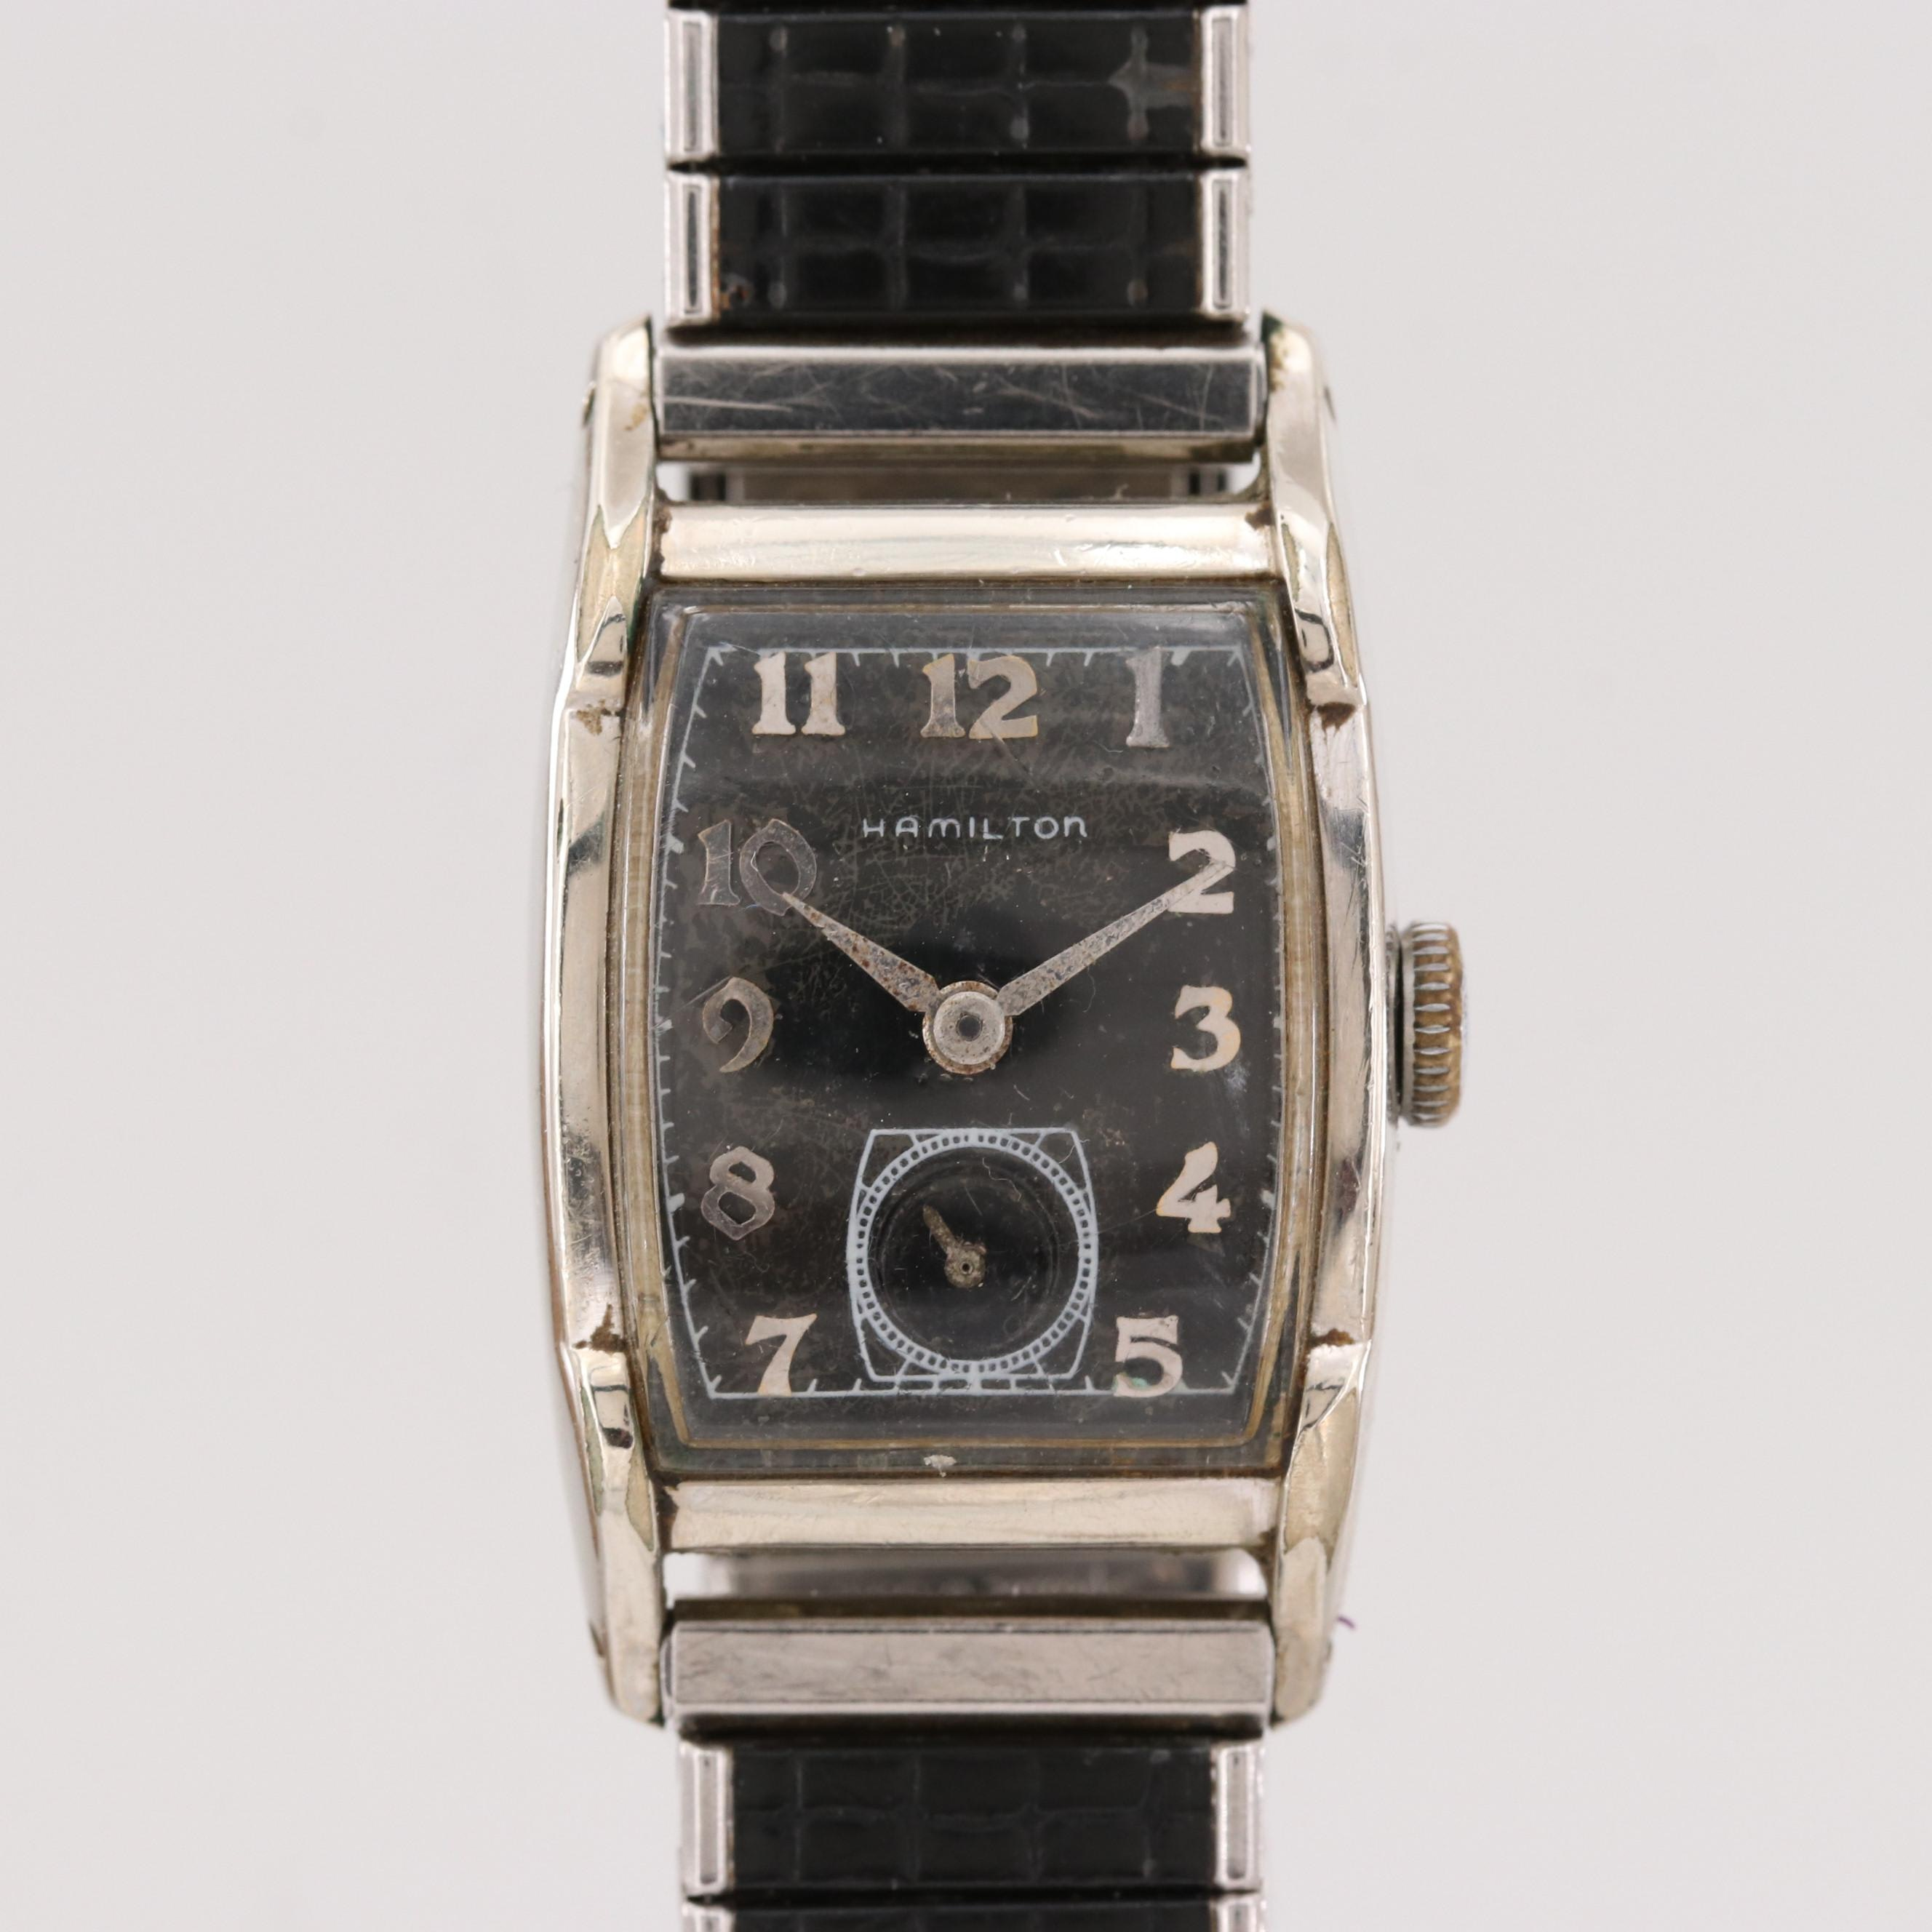 Hamilton 10K Gold Filled Wristwatch, 1952